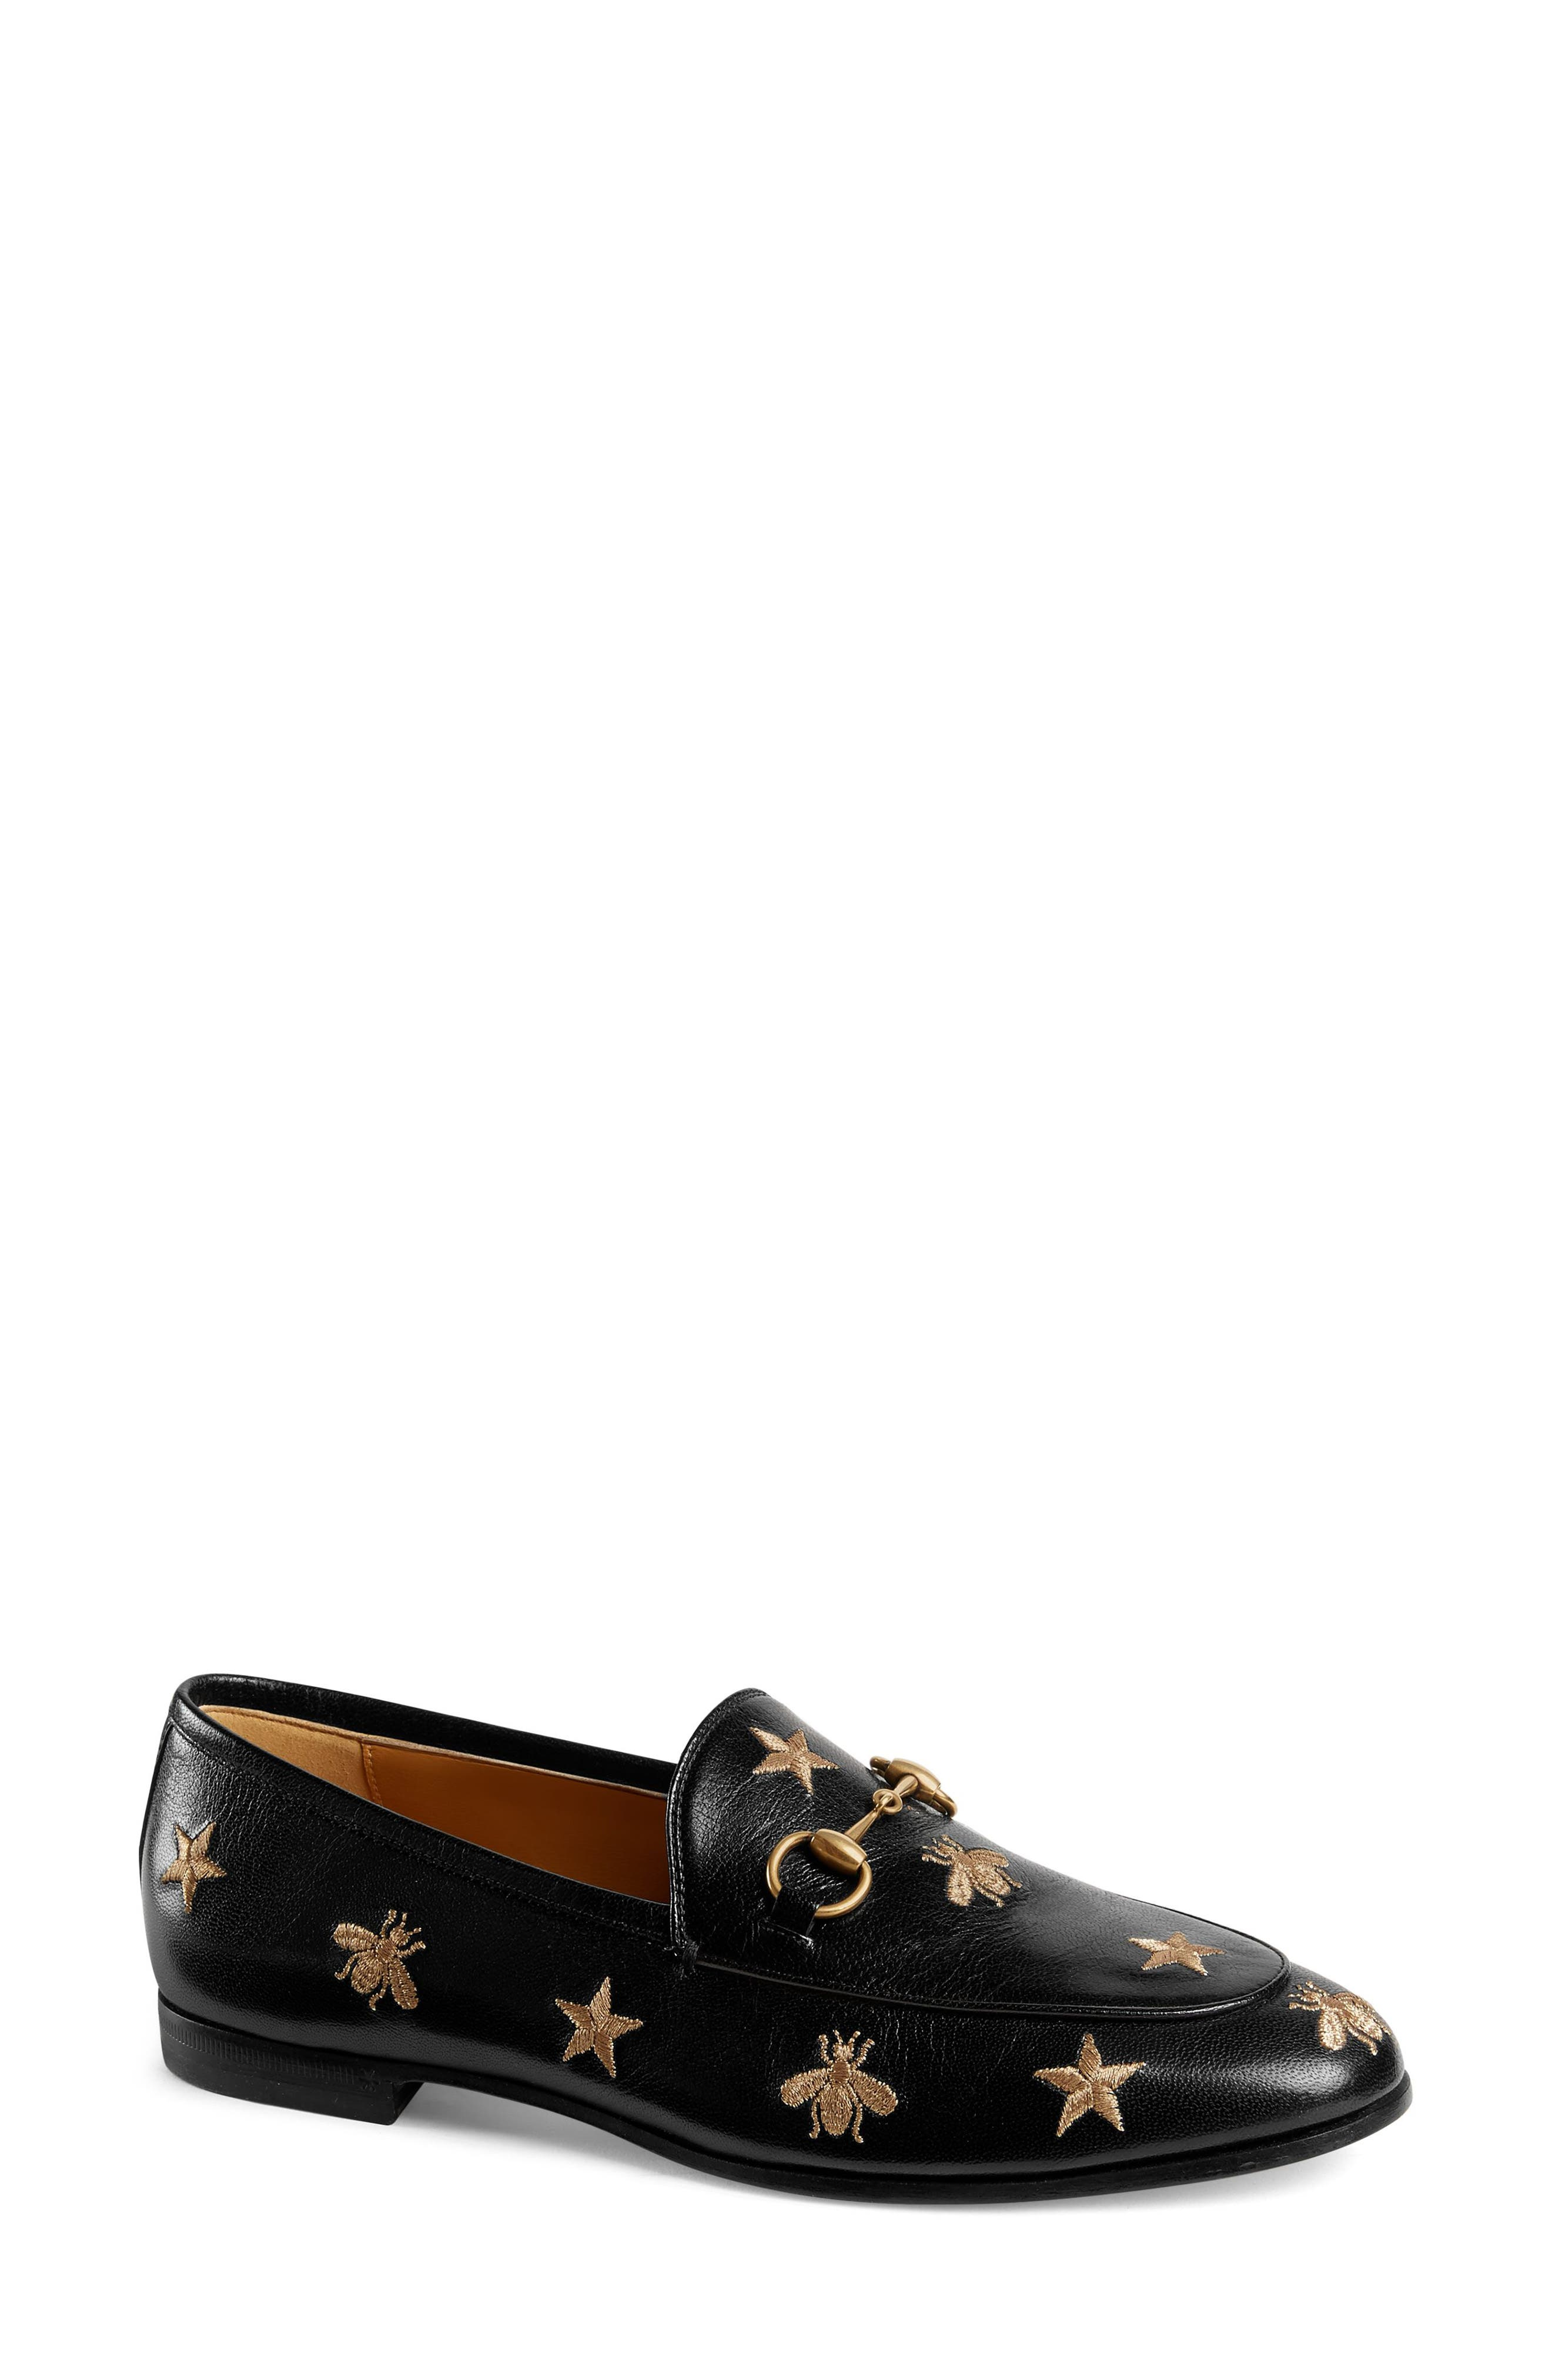 Jordaan Embroidered Bee Loafer,                         Main,                         color, BLACK